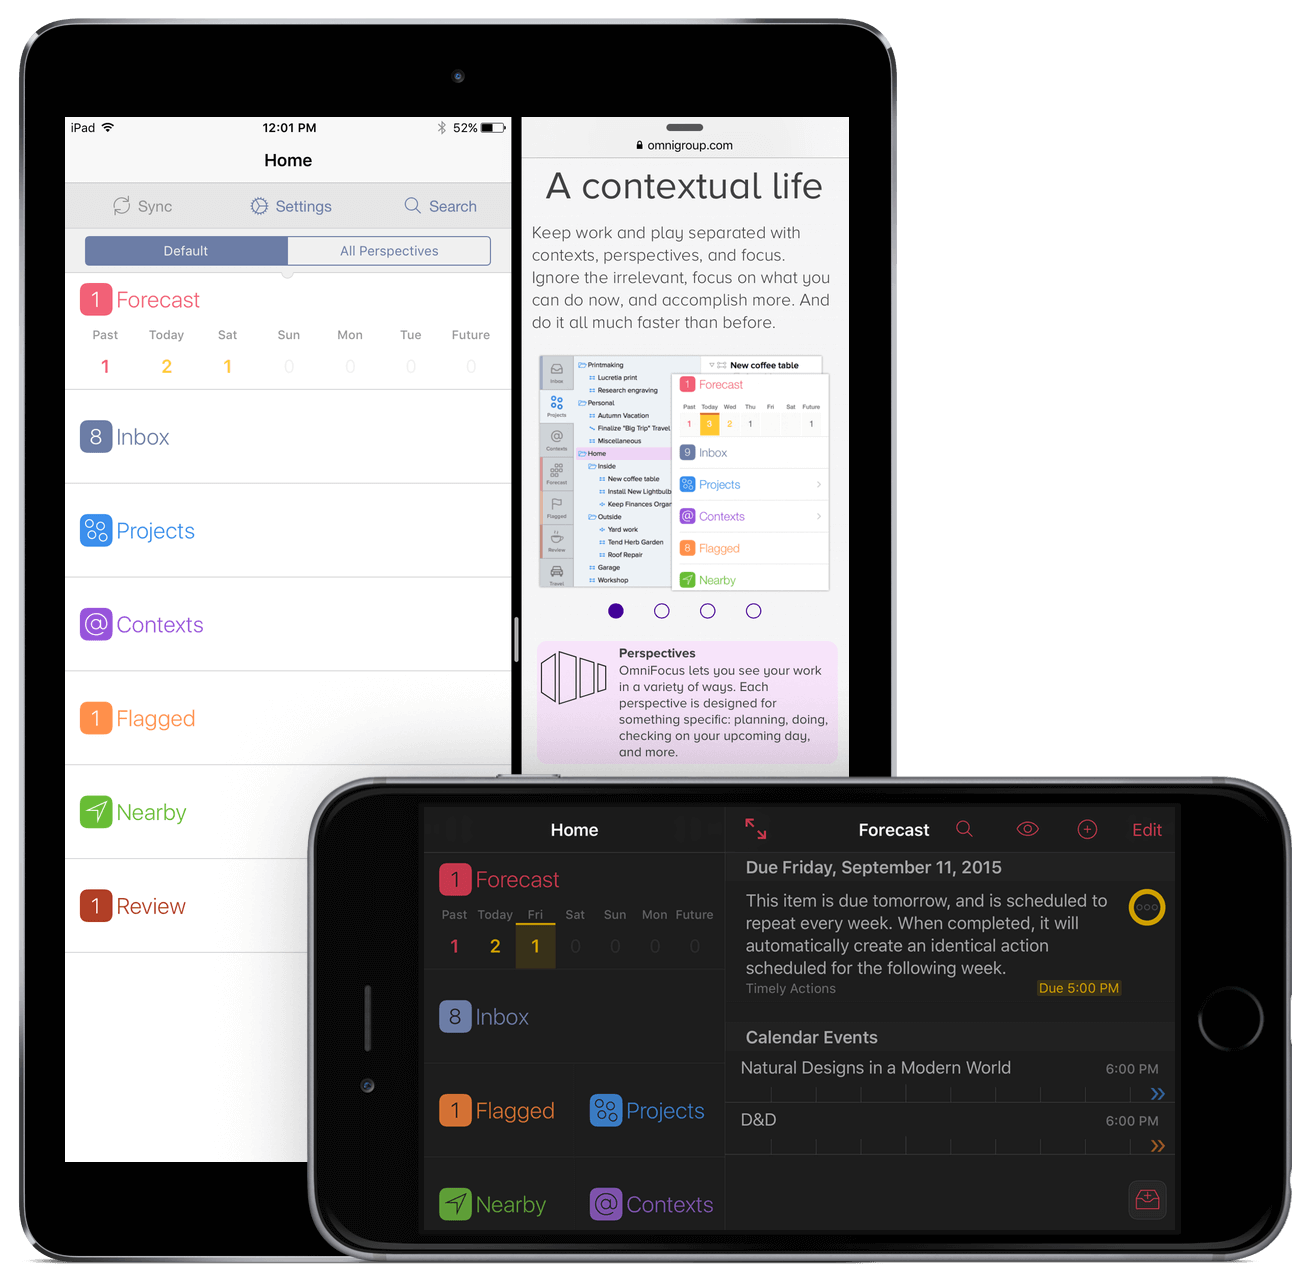 OmniFocus 2 for iOS in landscape orientation on iPhone 6 Plus, and in portrait orientation on iPad Air 2.